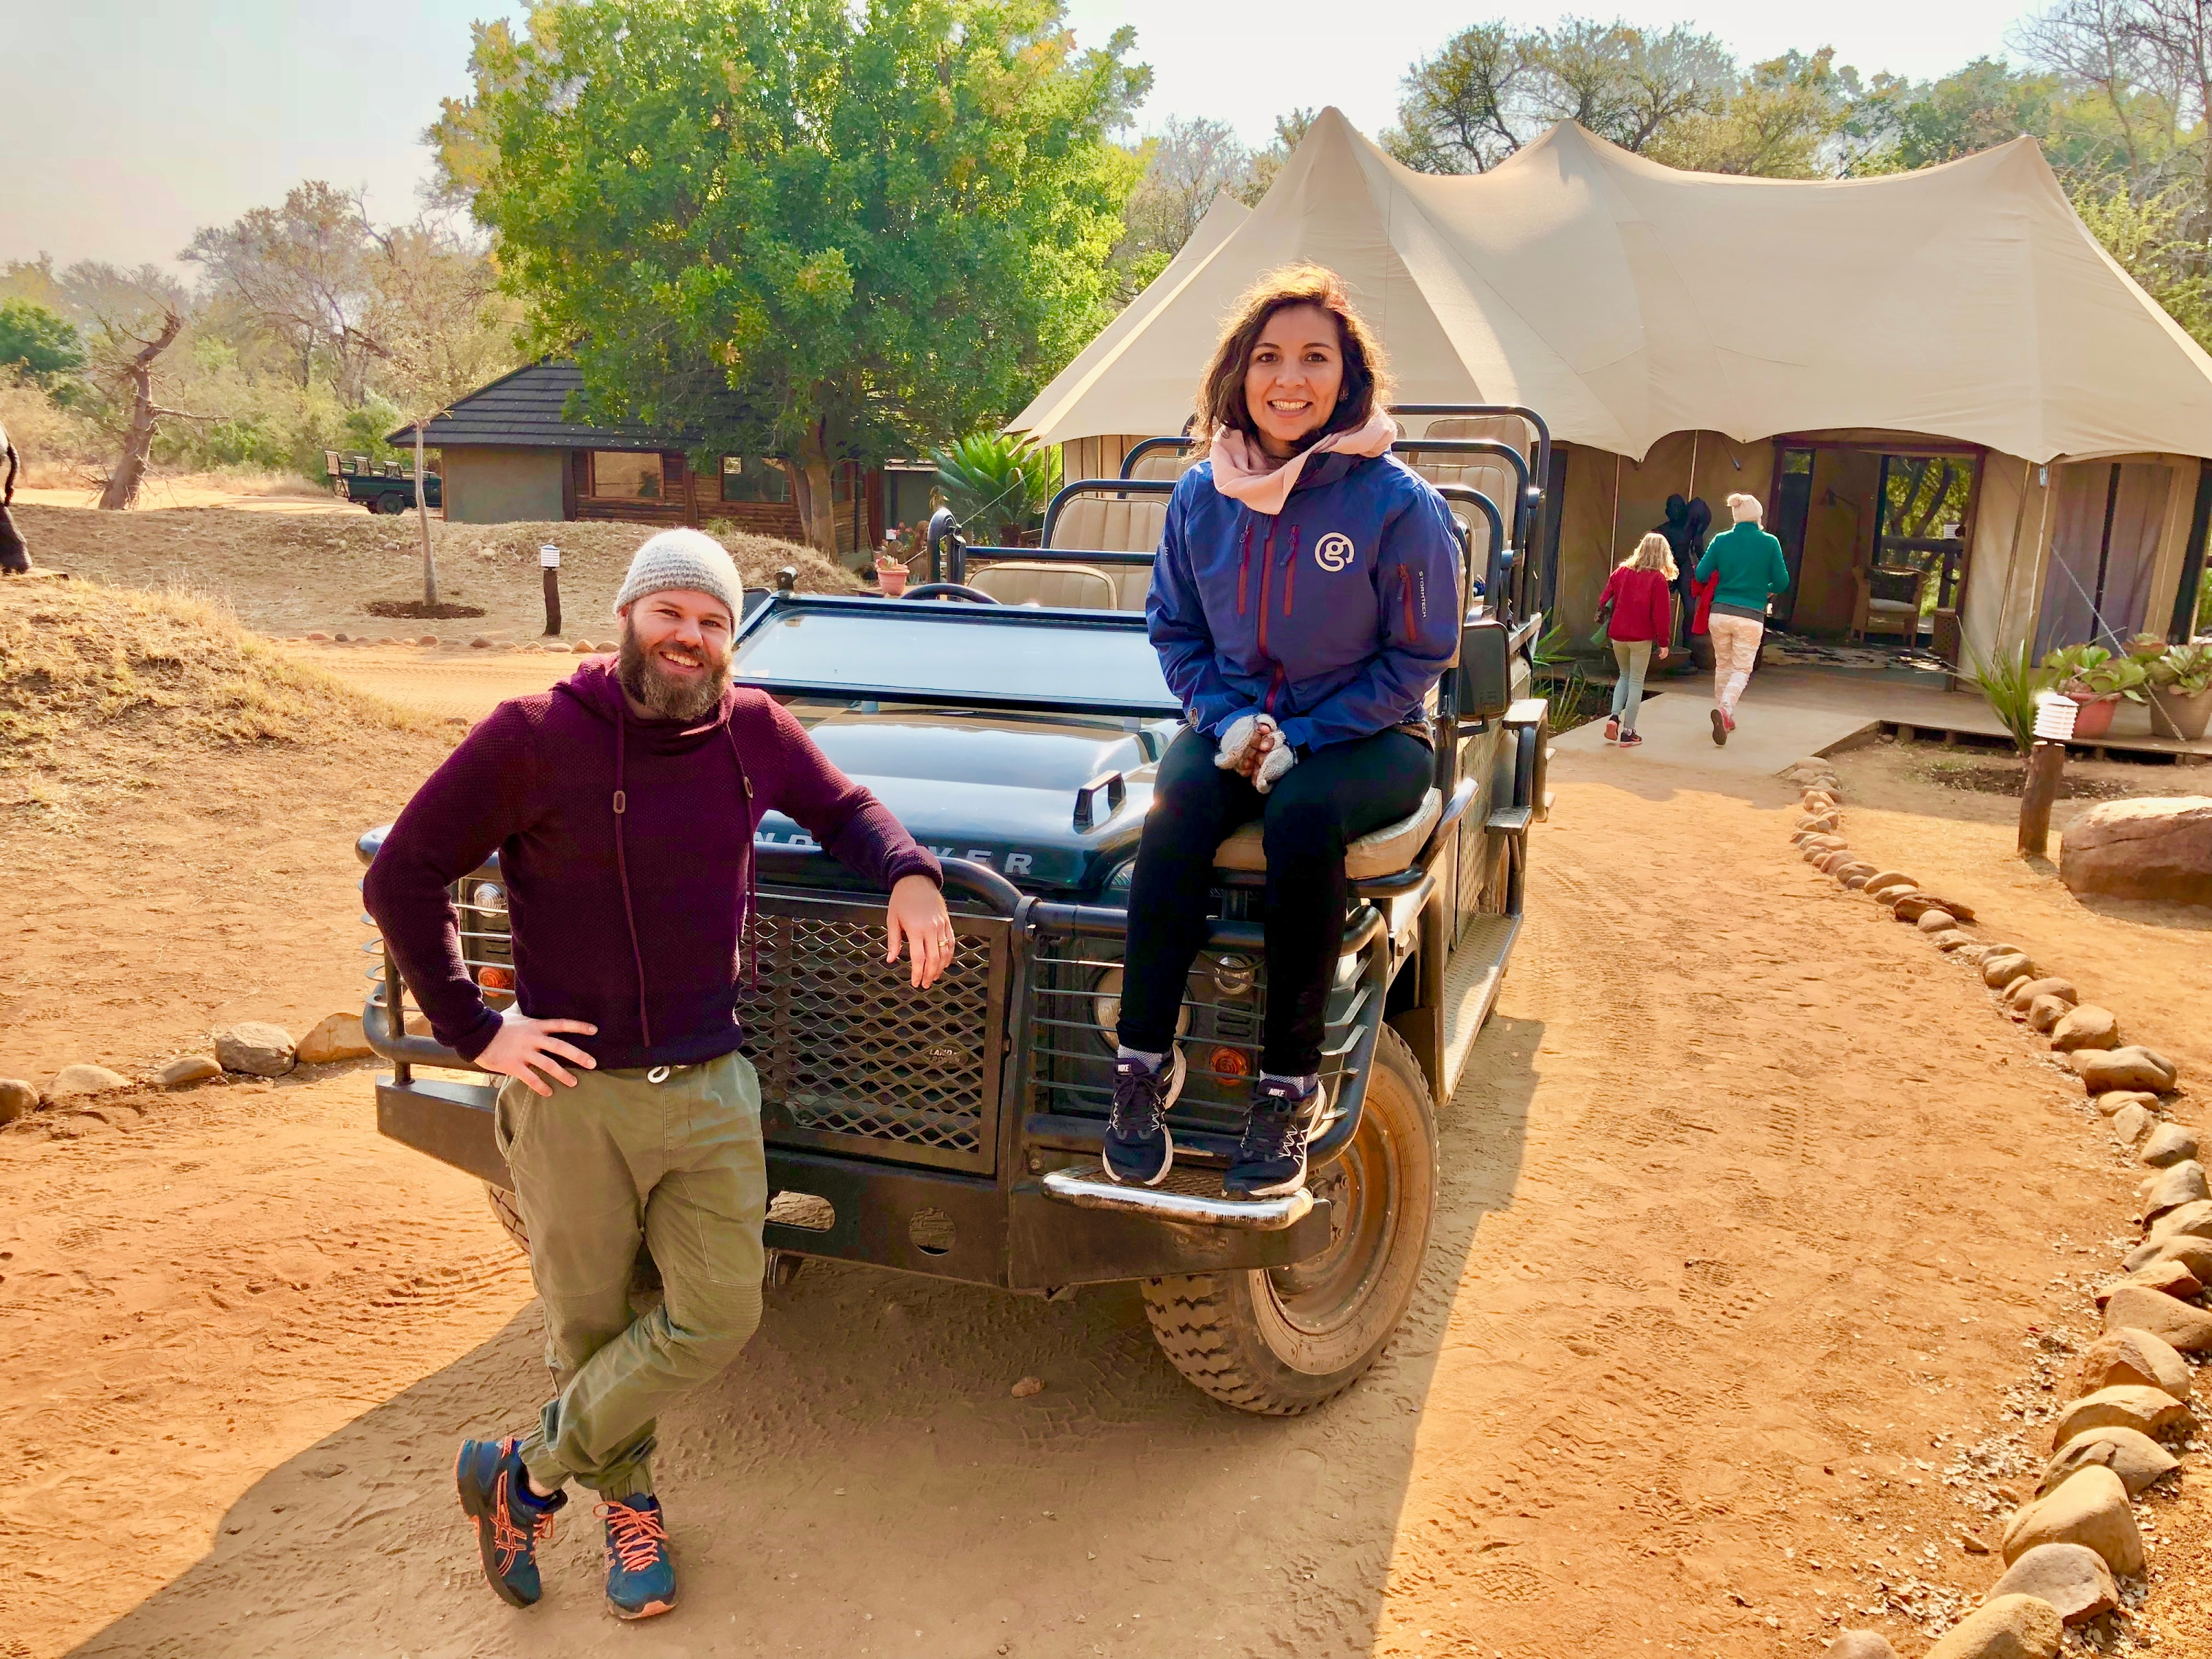 Our annual trip to the bushveld, we stayed at Karongwe Private Game Reserve for this trip in 2018